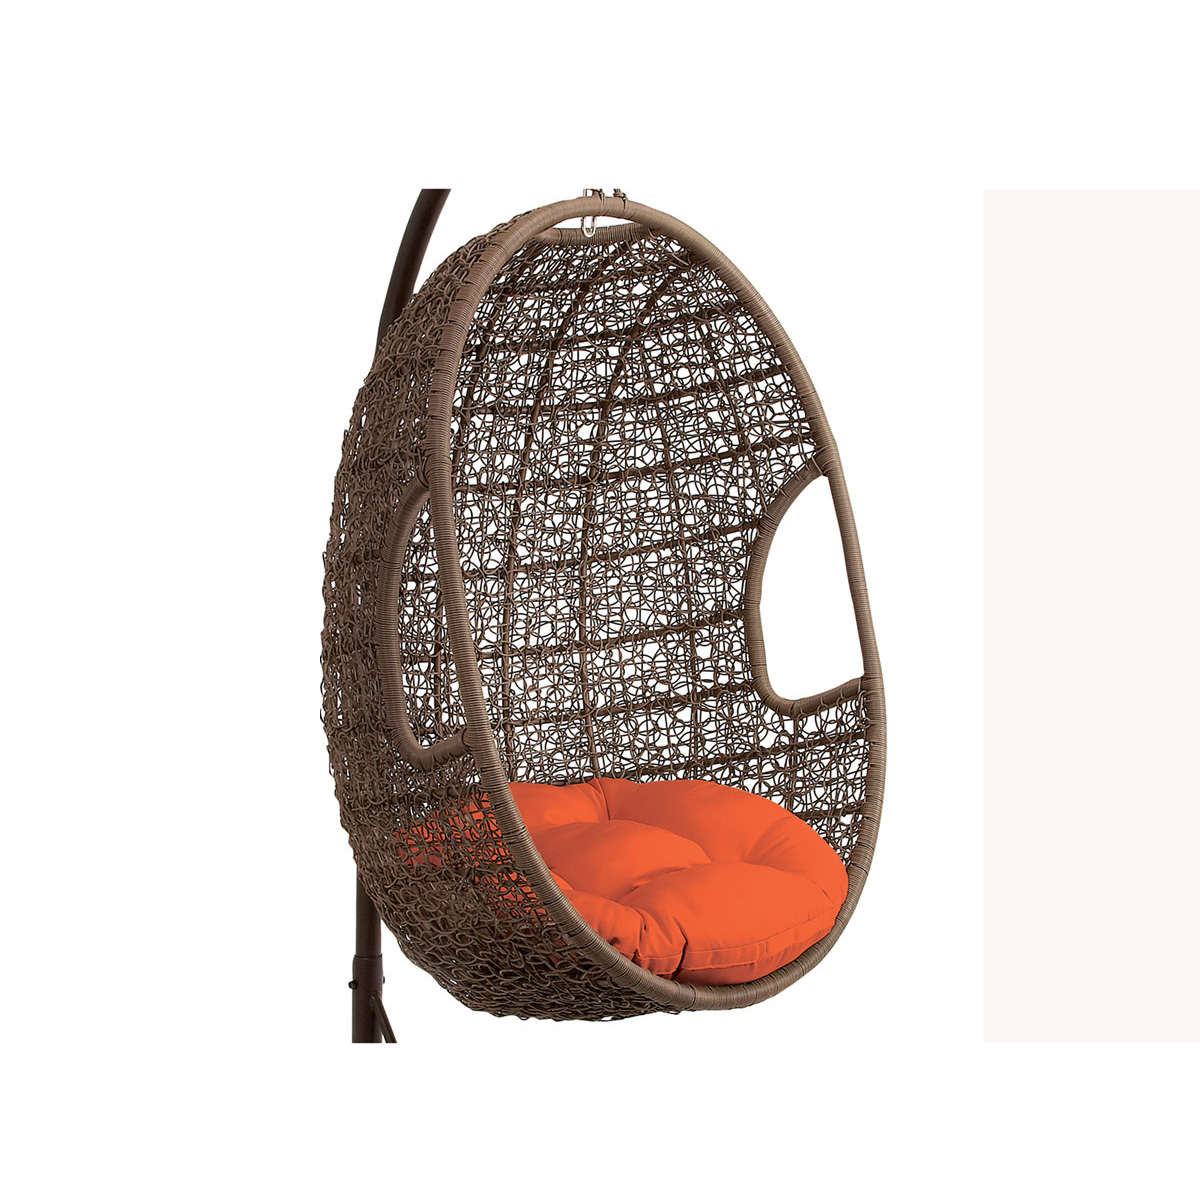 Rattan Swing Chair Egg Chair Hanover Outdoor Wicker Rattan Hanging Egg Chair Swing With